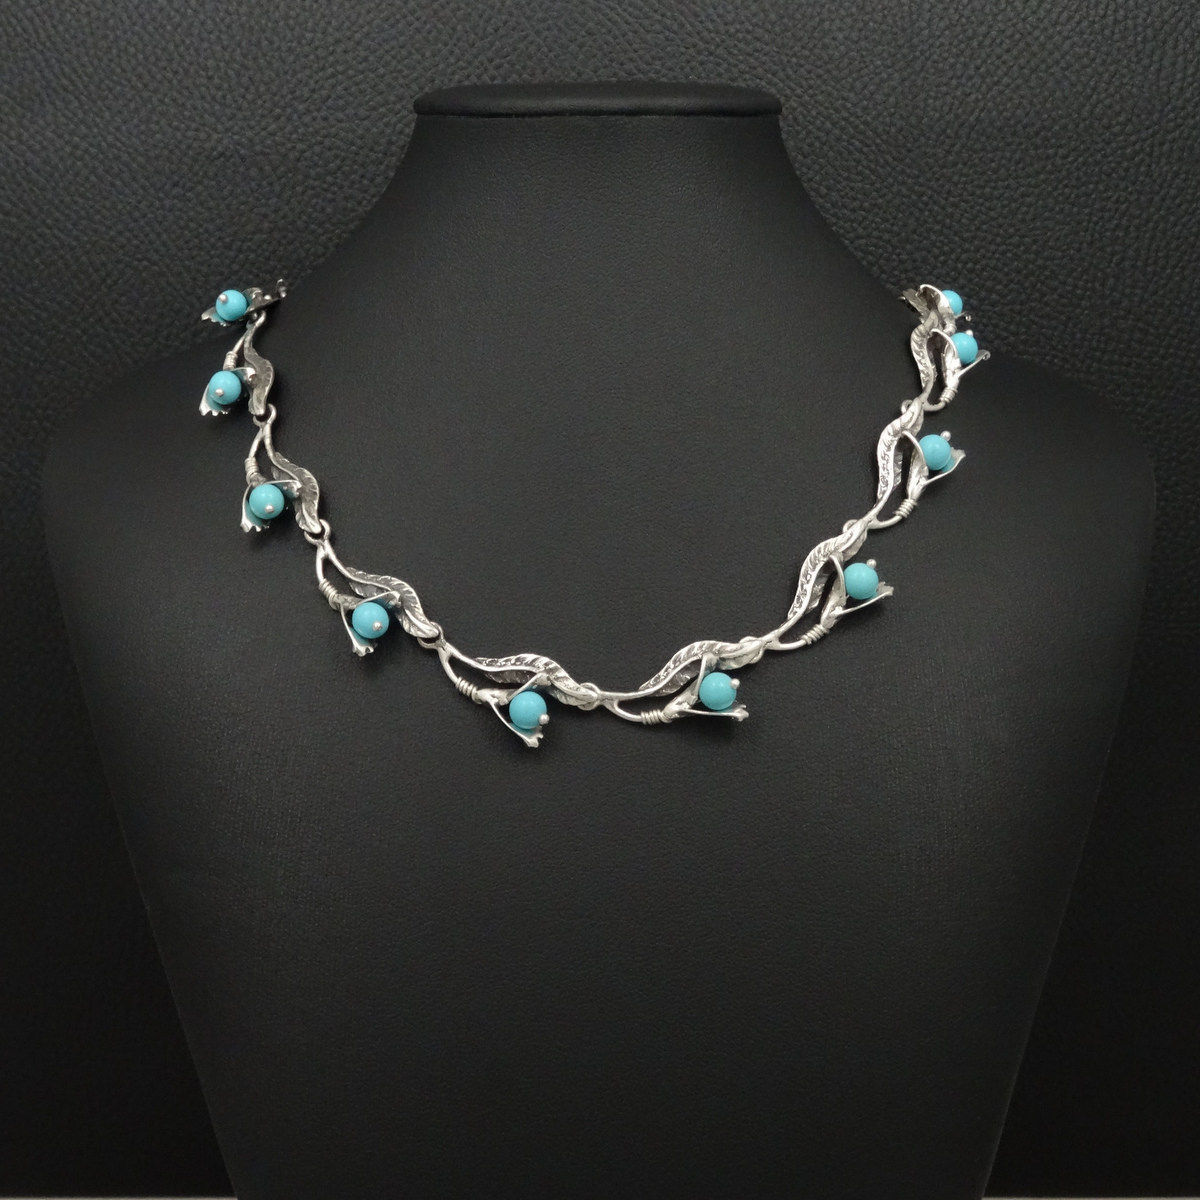 40da78ecfe2 Turquoise Necklace Victorian Style 925 STerling Silver Greek ...